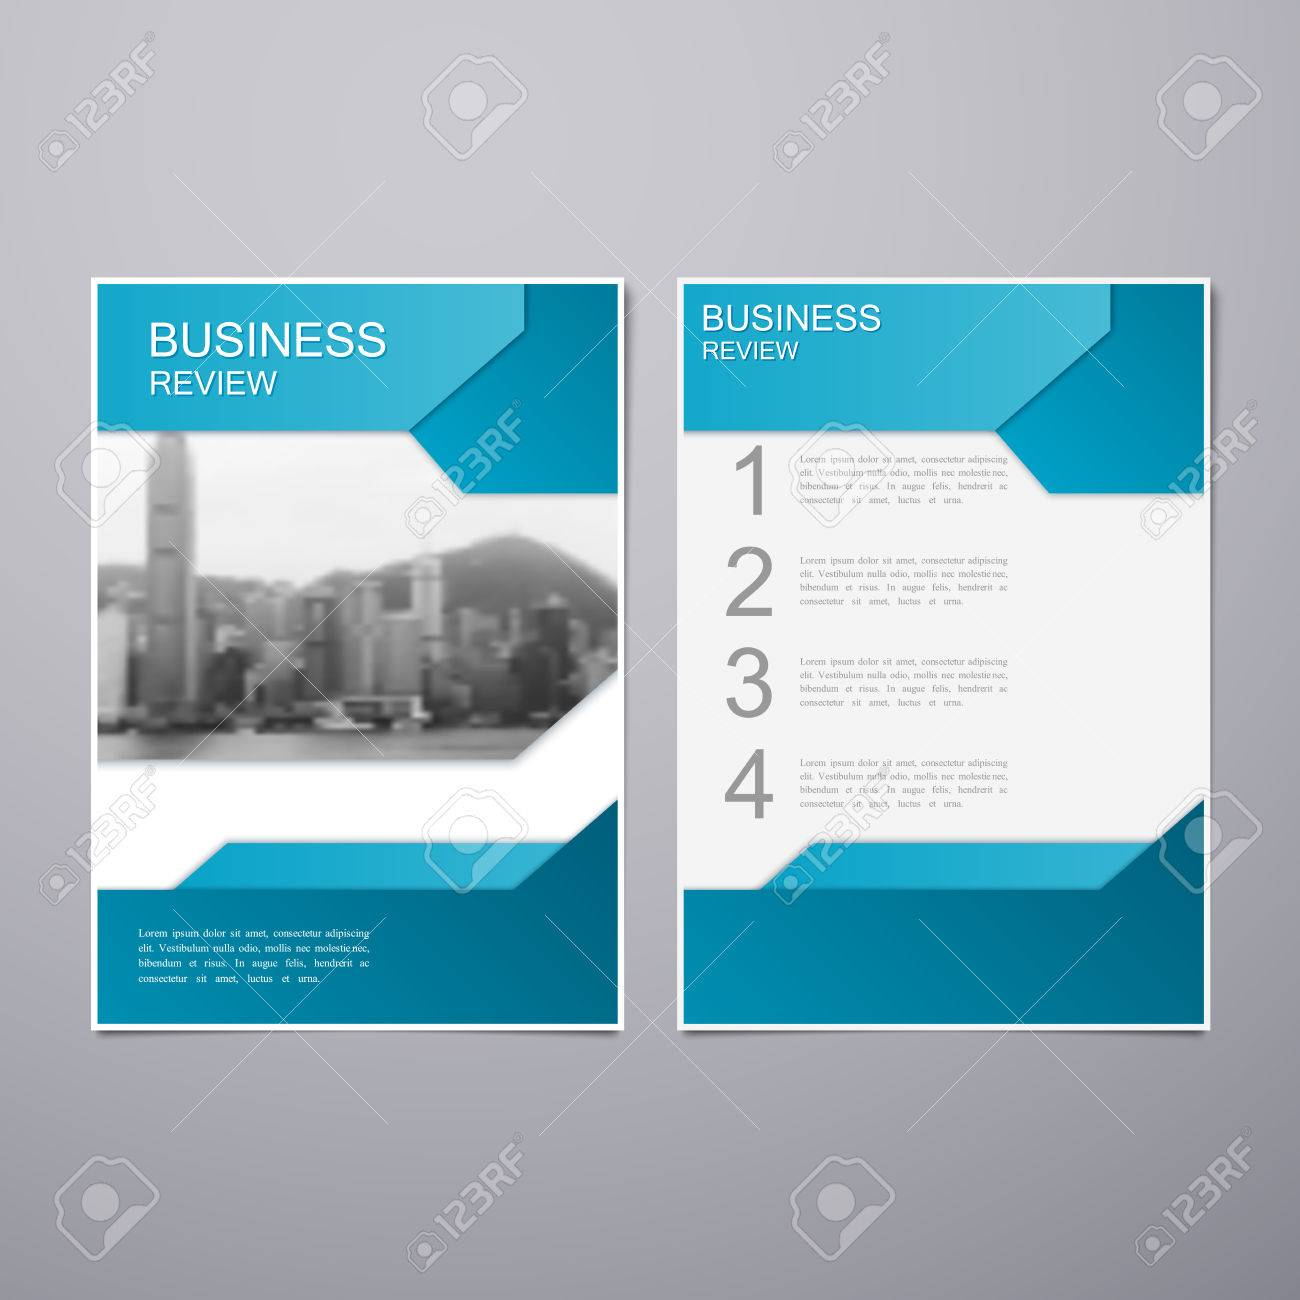 Business review leaflet brochure or flyer a4 size template design business review leaflet brochure or flyer a4 size template design book cover layout design cheaphphosting